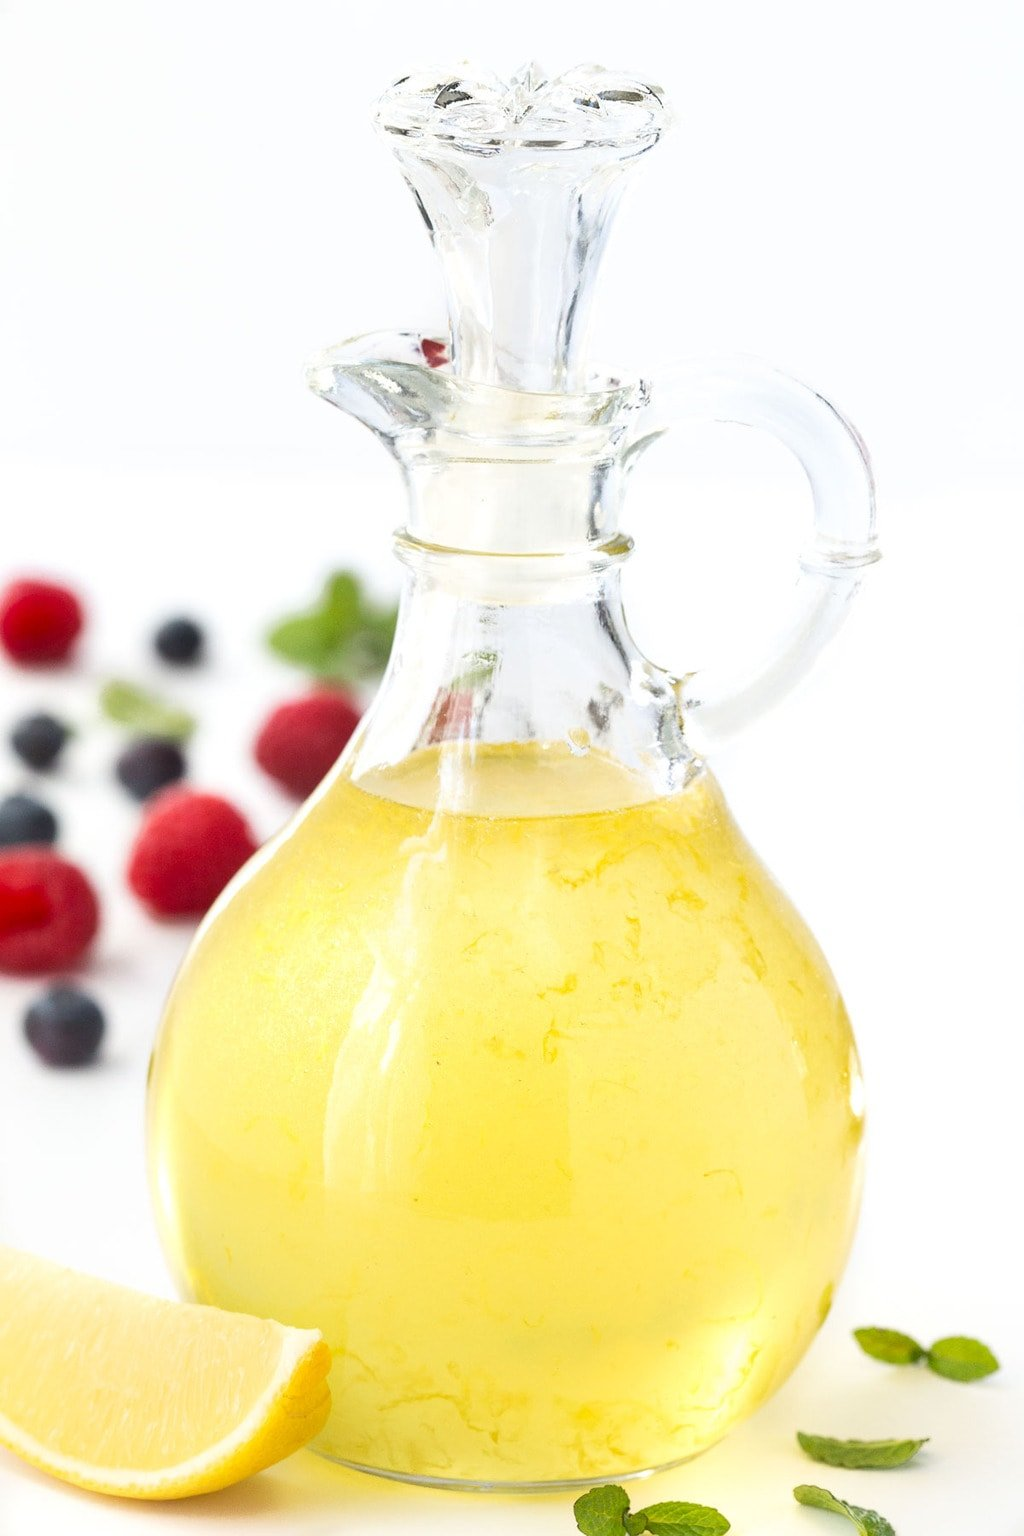 A photo of a glass pitcher of Limoncello Syrup with fruit in the background.